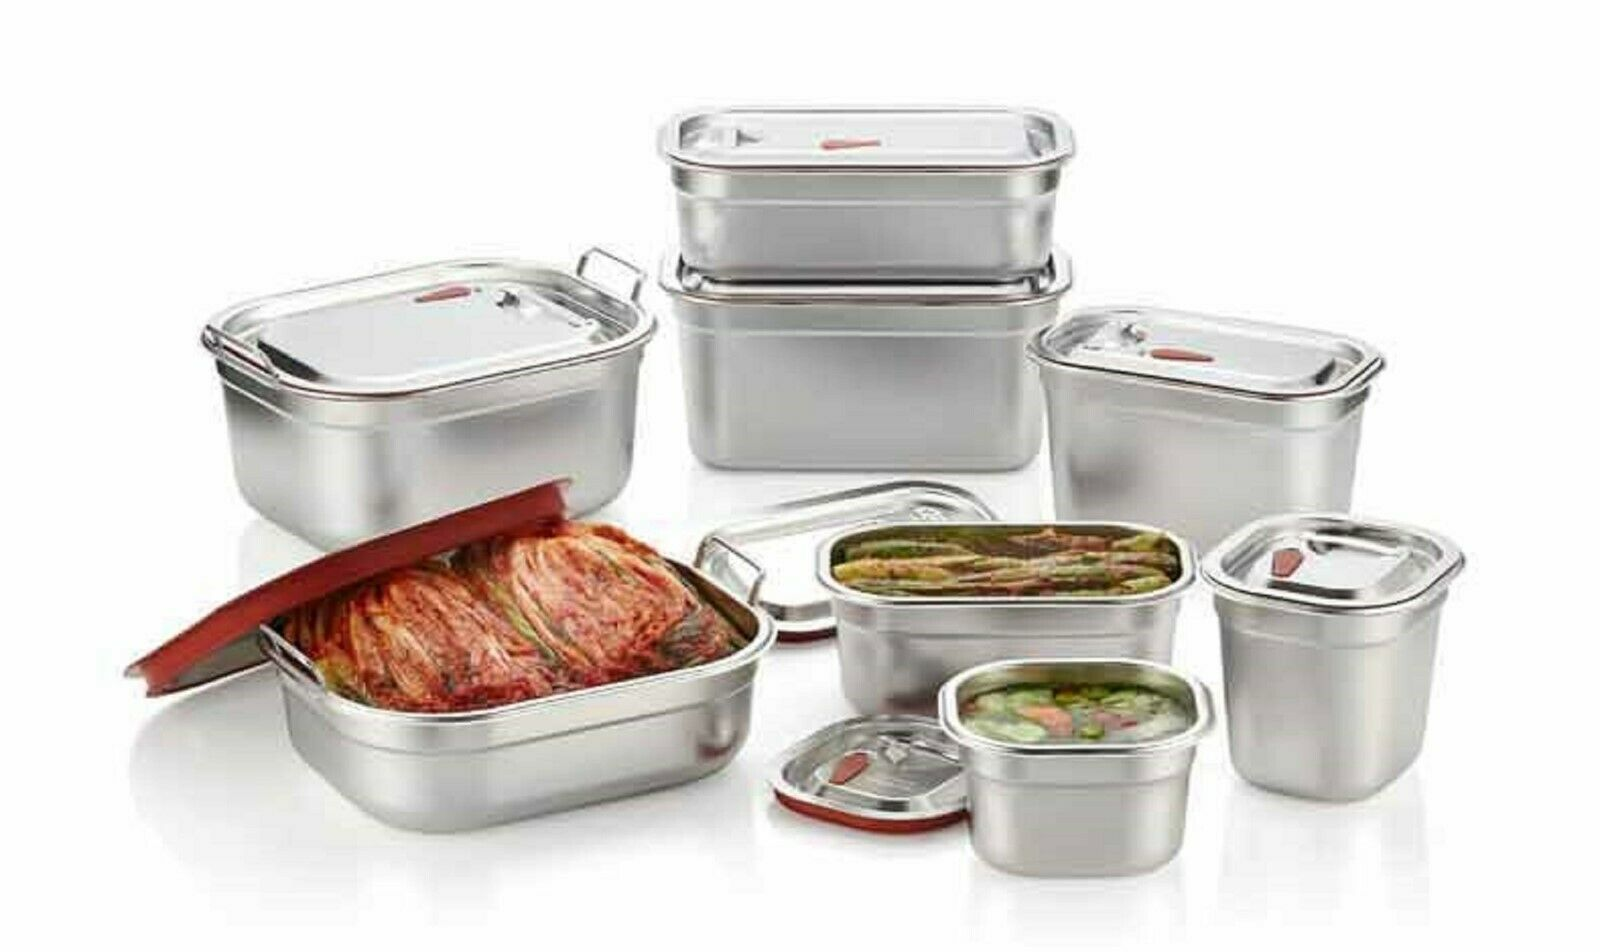 Characin Stainless Steel Airtight Food Storage Container Sealing Leak Proof